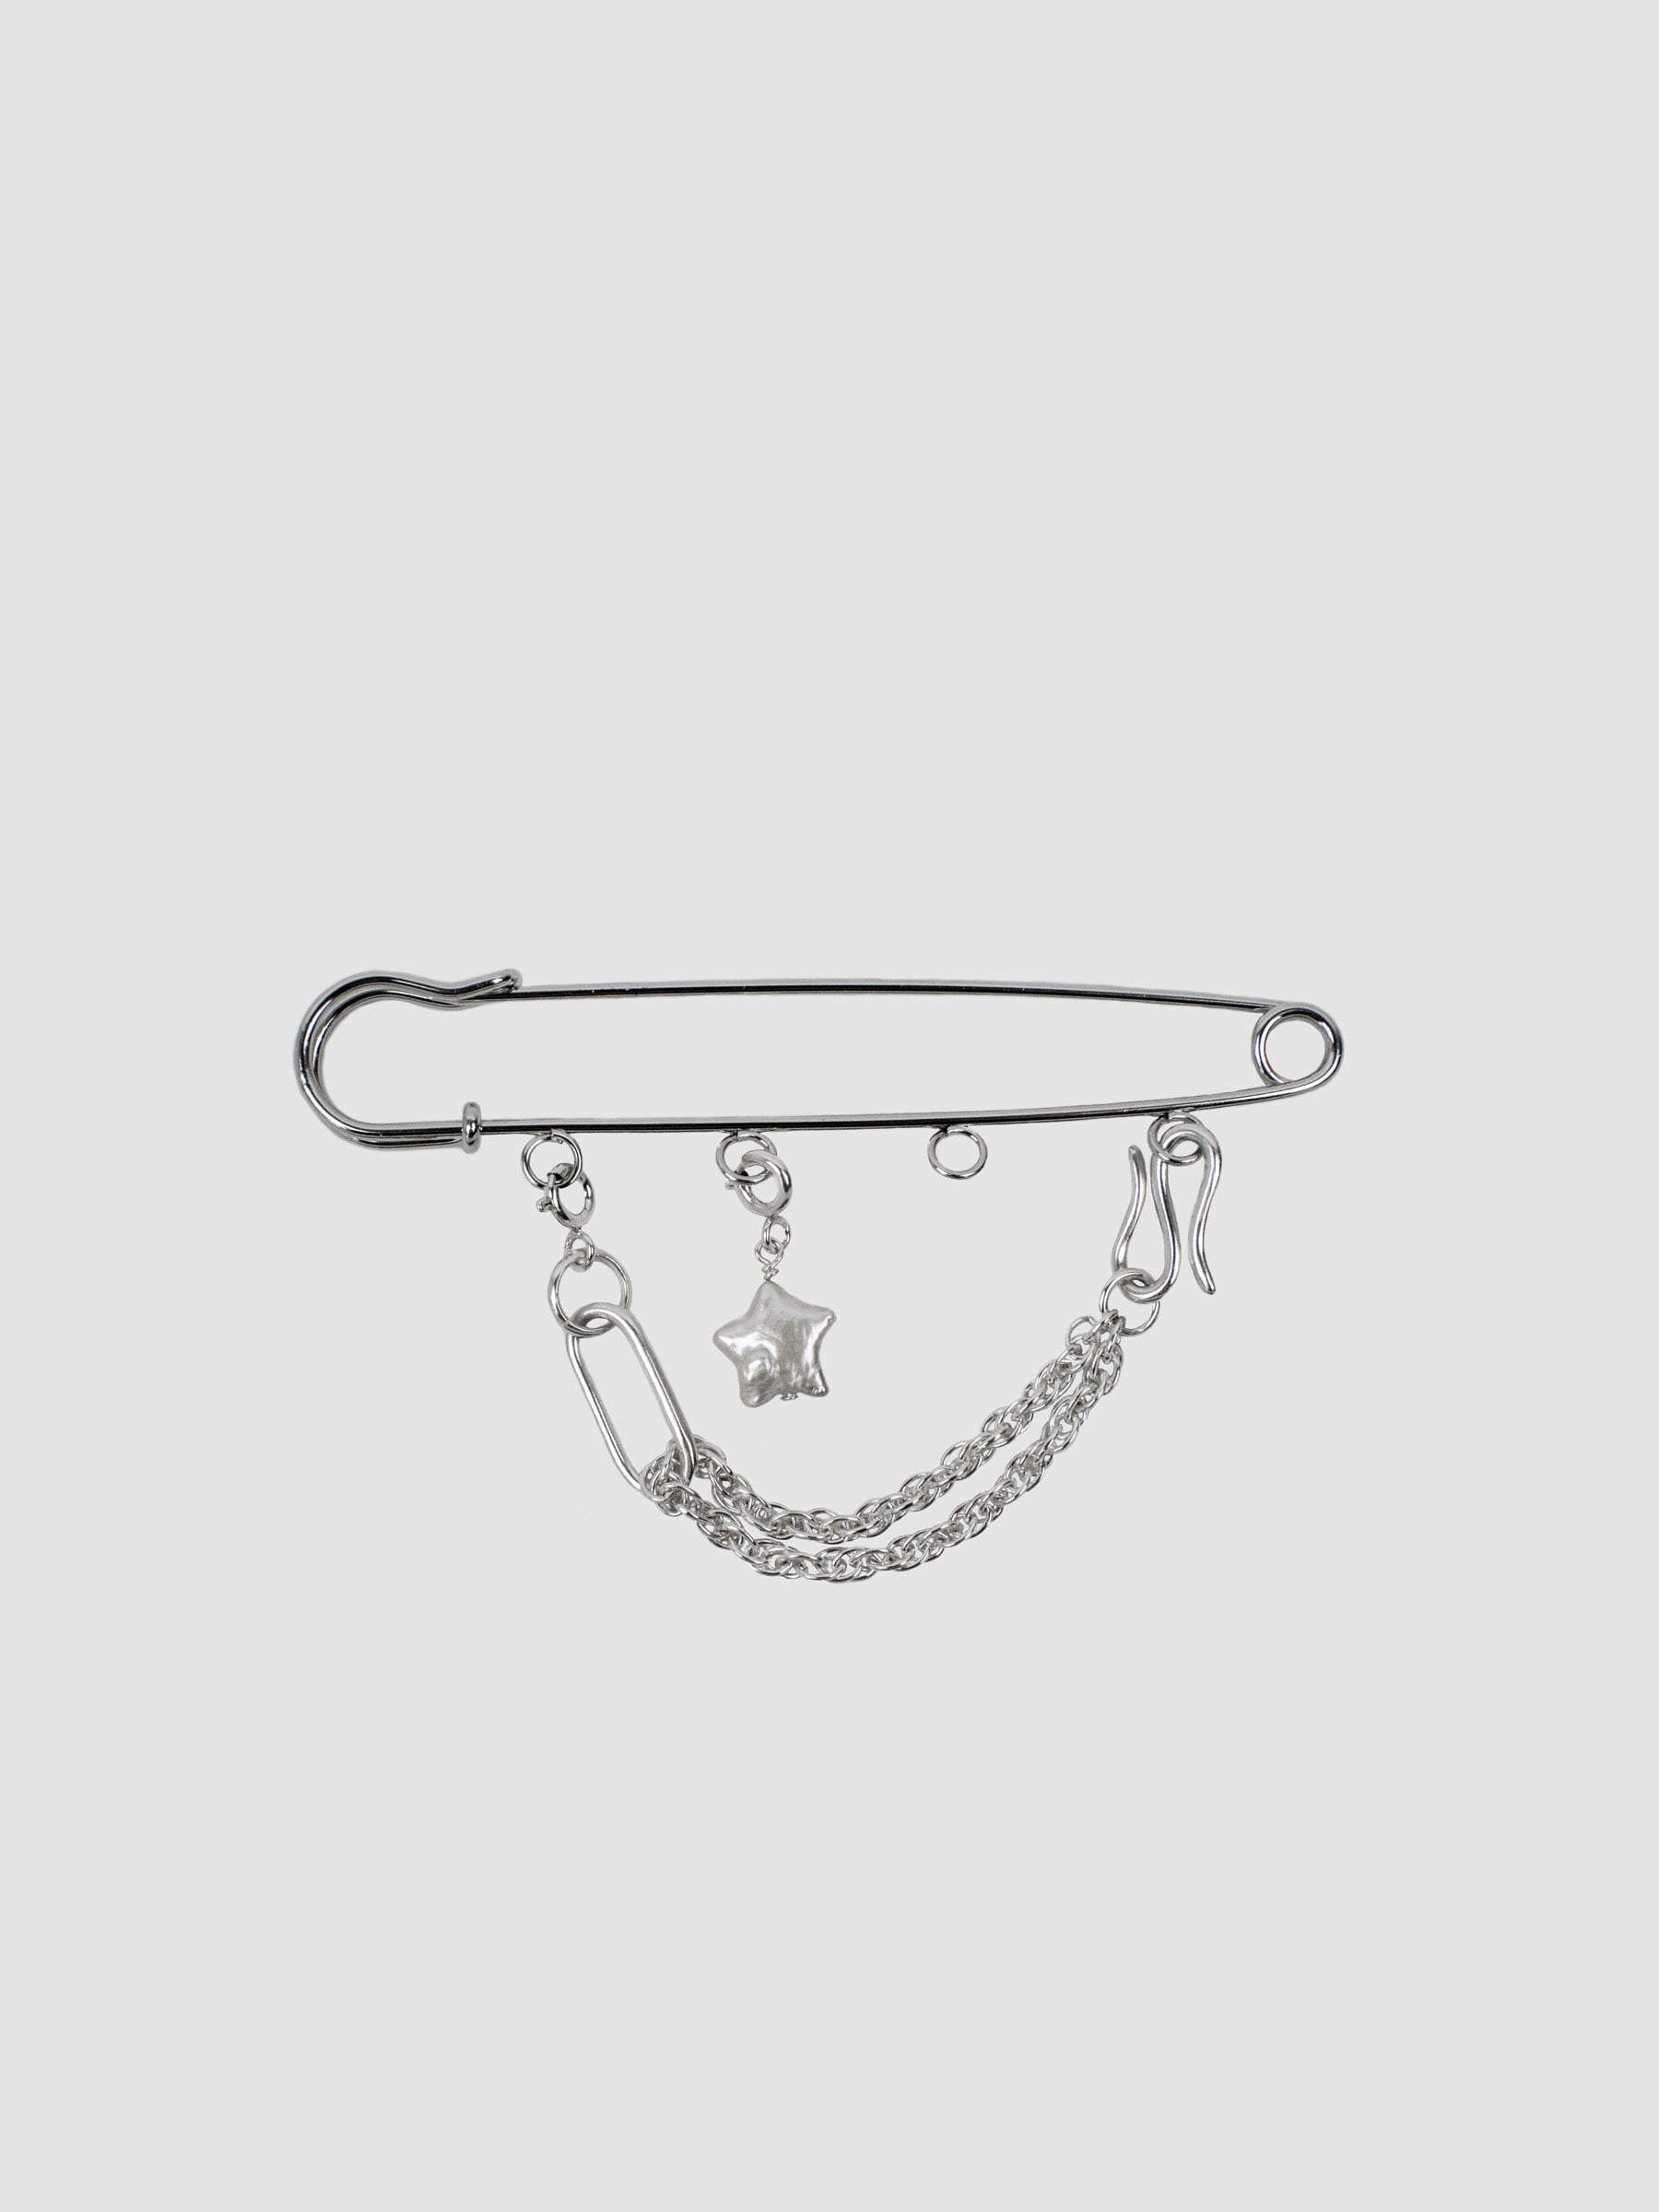 The SONYA LEE x KARA YOO Kilt pin charm. An oversized nickel-plated pin customizable piece for weighing down the top flap of a skirt or for otherwise personalizing blouses, jackets and scarves. Charms can be added and taken away for desired look. Made in Canada.